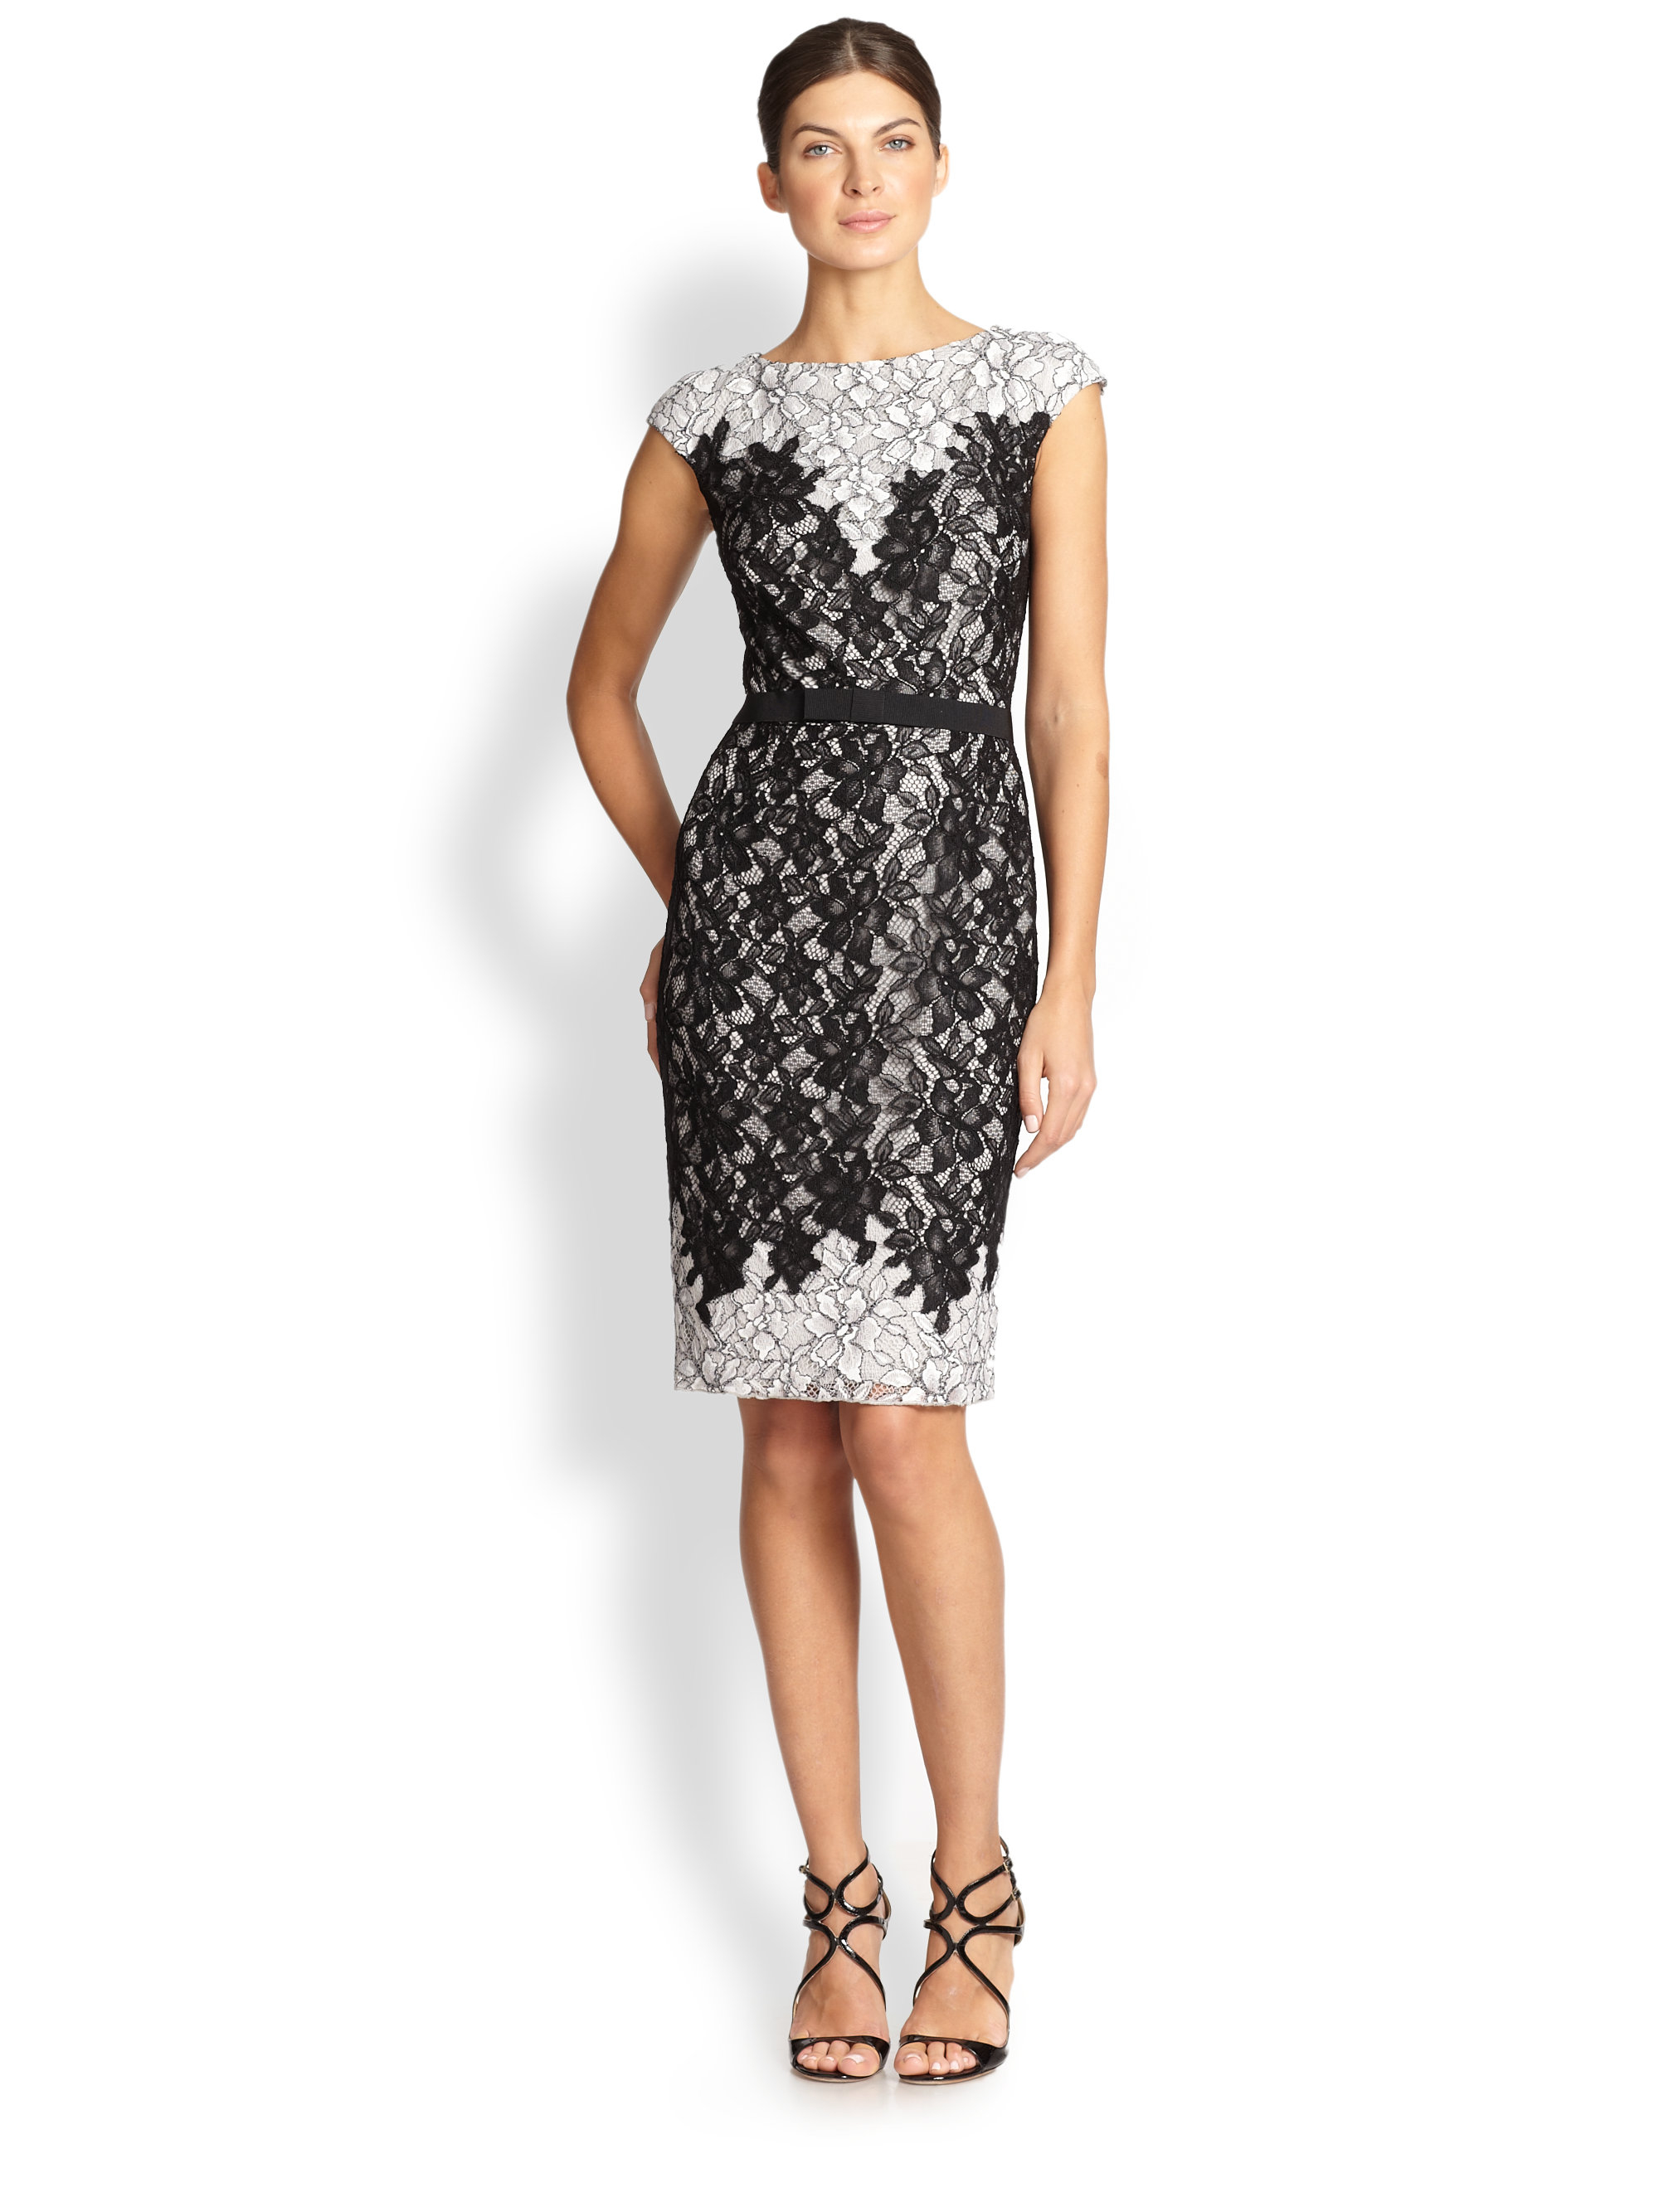 Wedding Lace Cocktail Dress tadashi shoji contrast lace cocktail dress in black lyst gallery